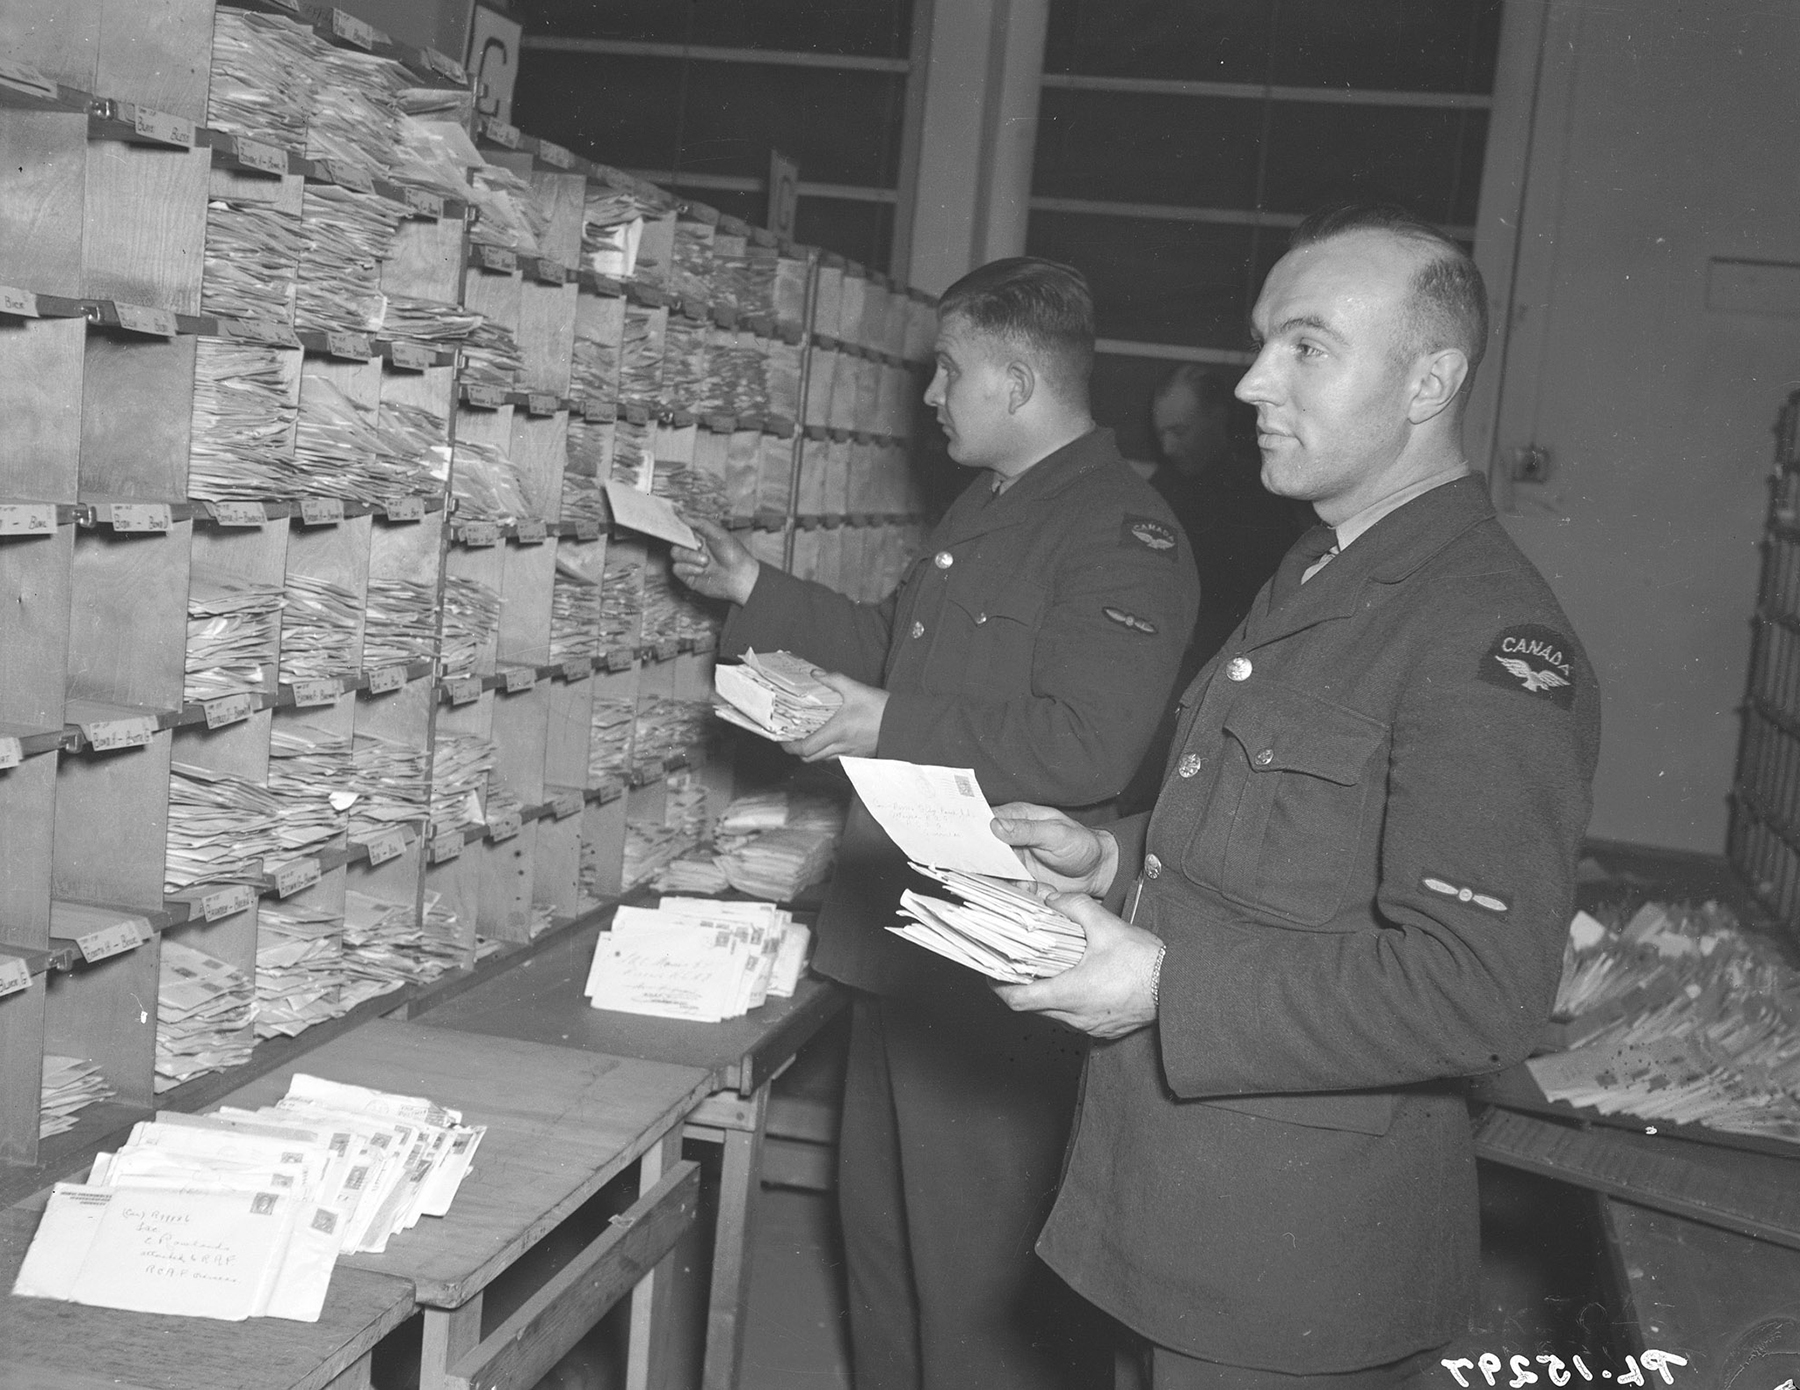 On January 14, 1943, Leading Aircraftman C.J. Doucet (Sydney, Nova Scotia) (front) and Leading Aircraftman G.A. Argue (Lemberg, Saskatchewan) sort letters alphabetically – many of them following their intended RCAF Overseas recipients from Royal Air Force station to station. PHOTO: DND Archives